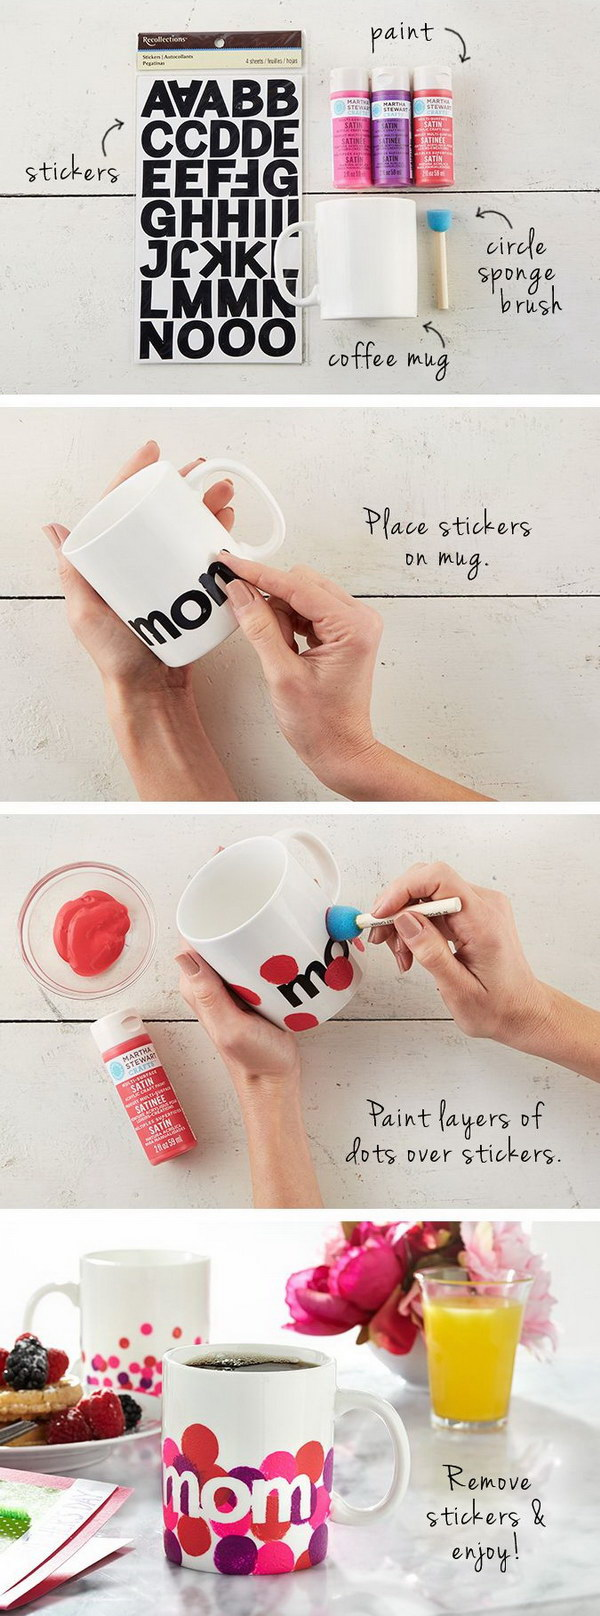 33 Awesome DIY Gifts for Mom